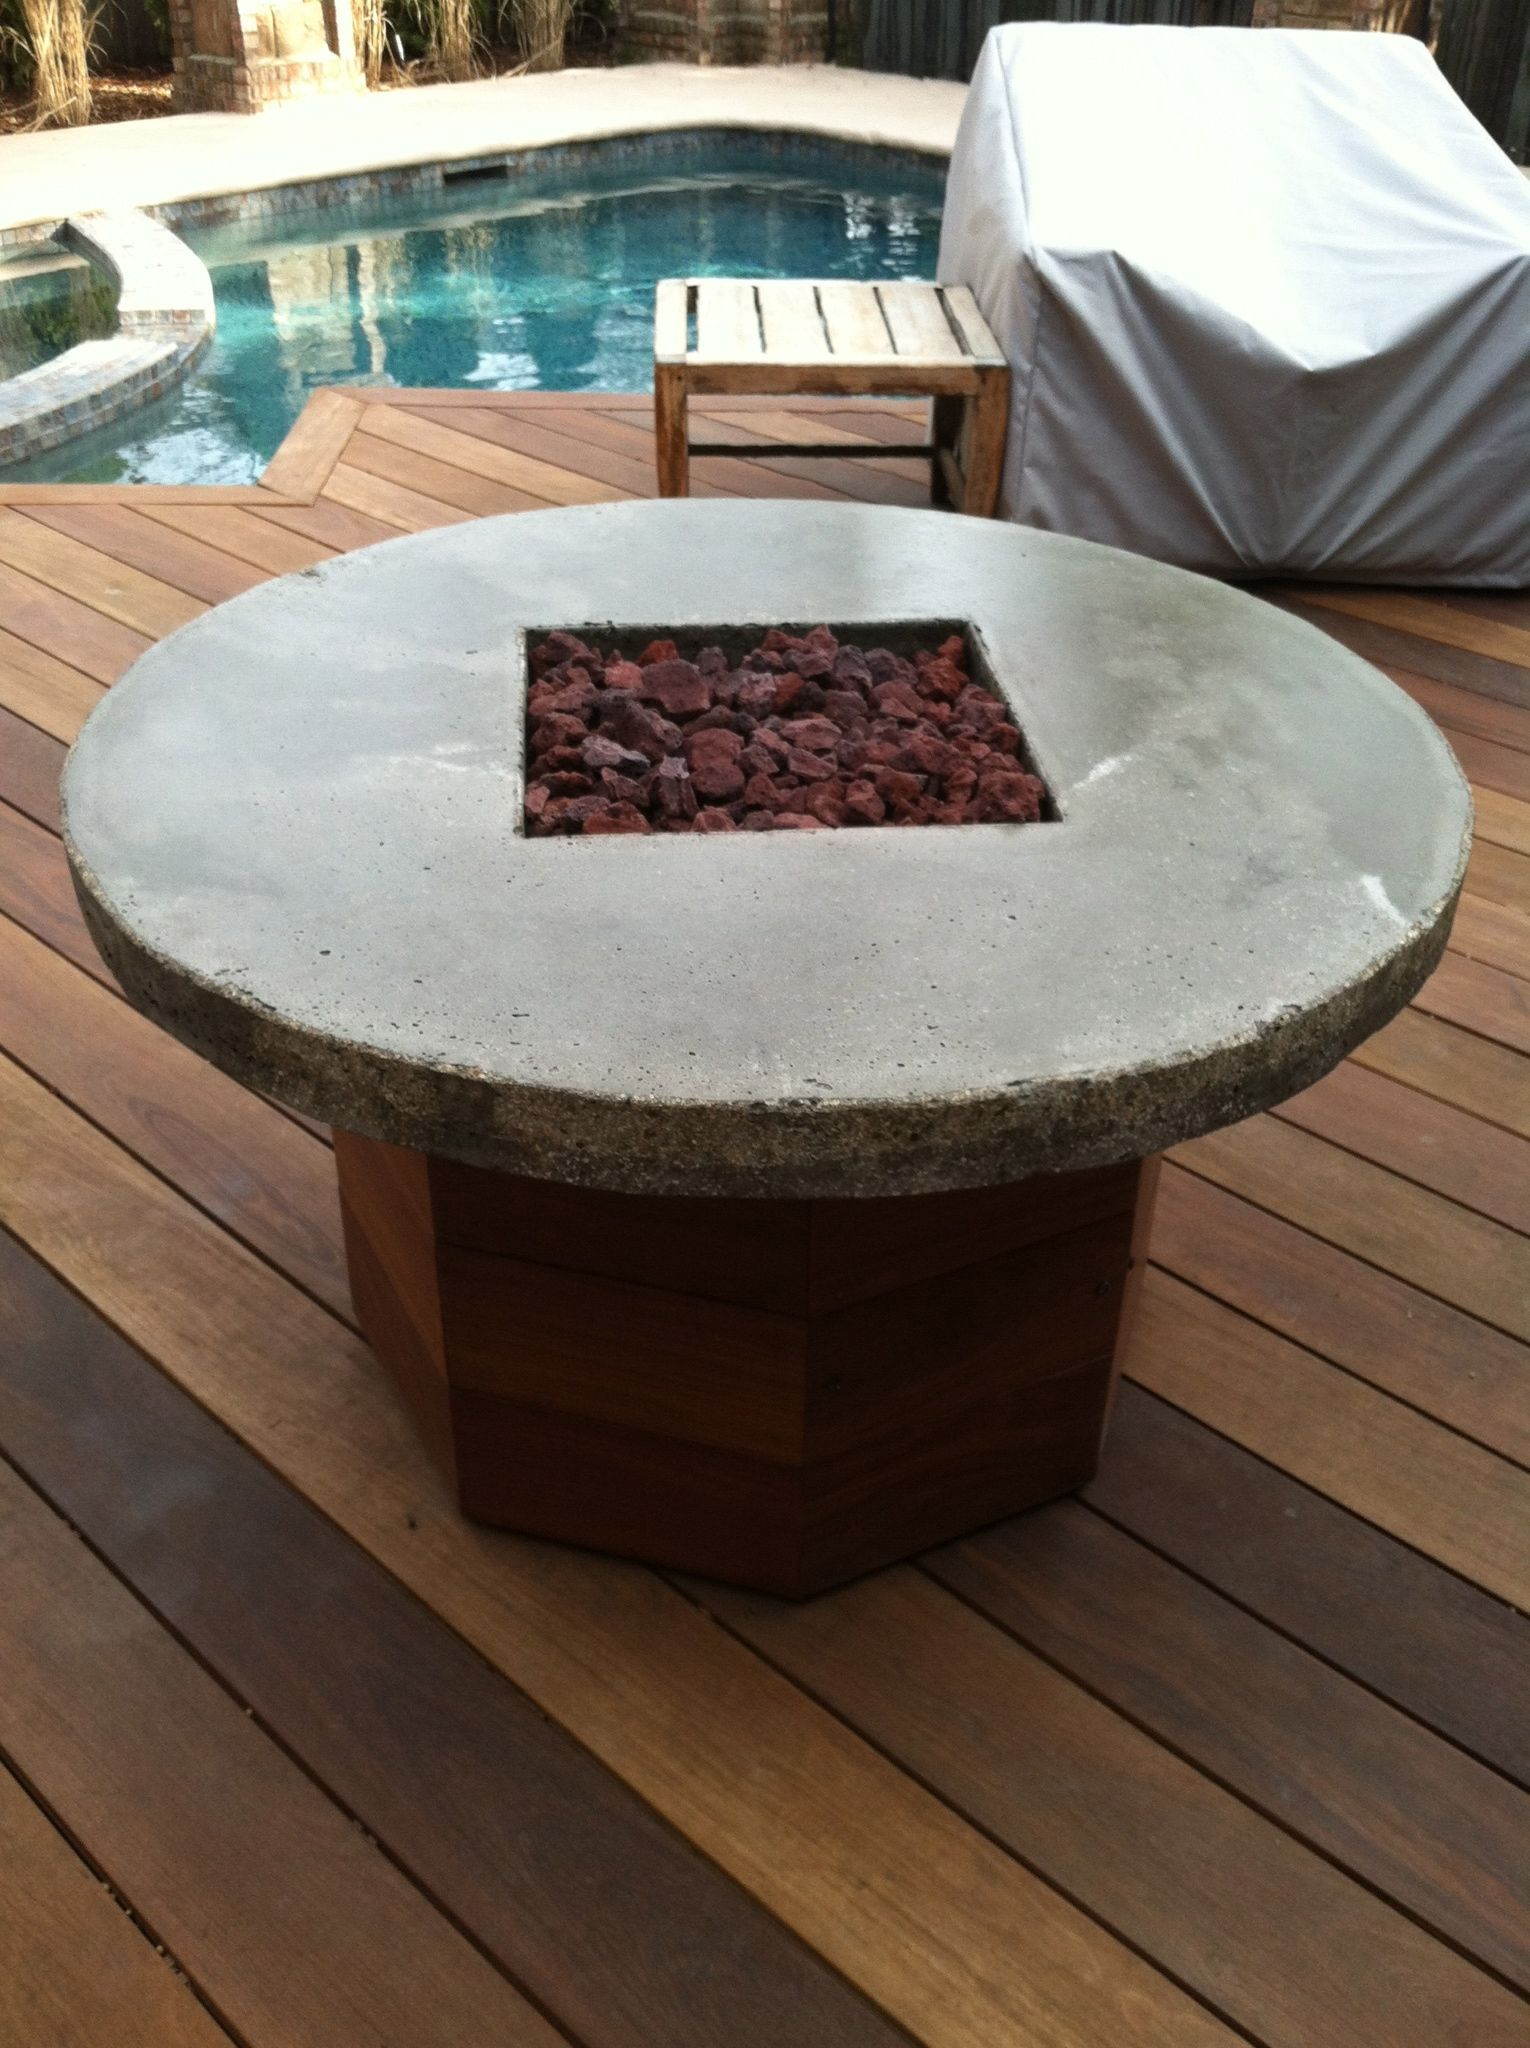 Ipe wood deck demands a custom ipe wood and concrete fire pit yes